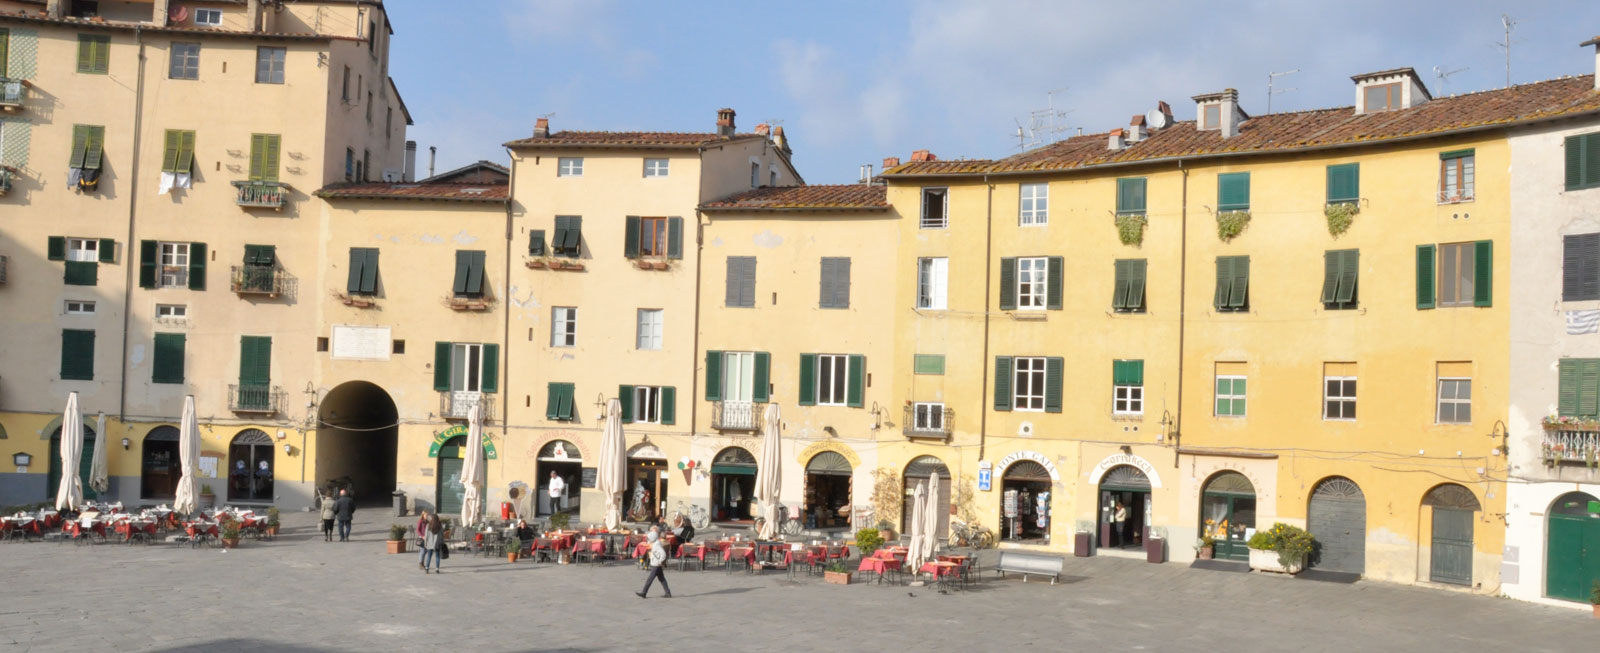 camere Lucca